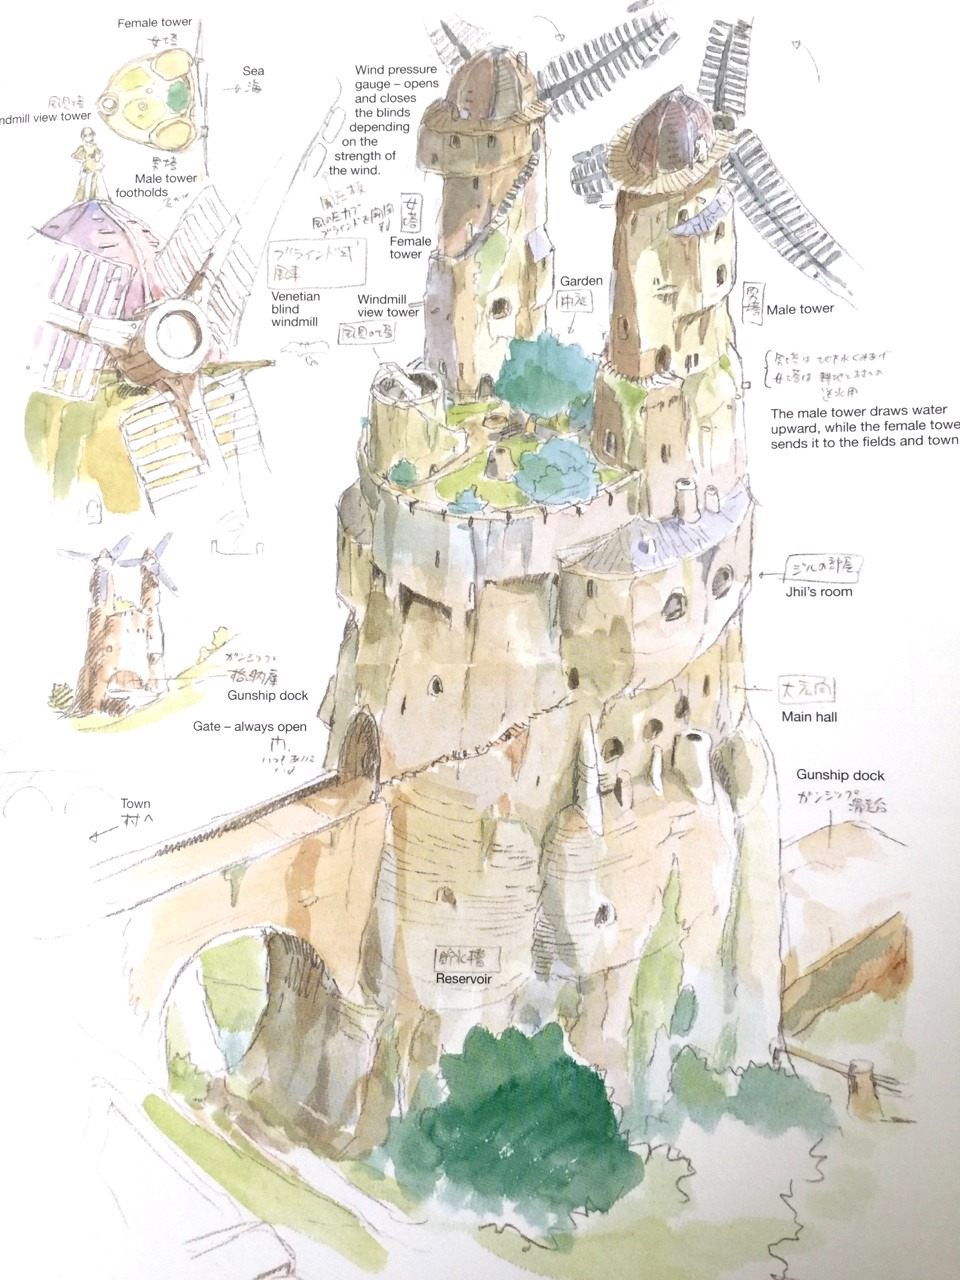 Production-Sketches-and-Concept-Work-for-Nausica-of-the-Valley-of-the-Wind-Hayao-Miyazaki-nausicaa-of-the-valley-of-the-wind-40590599-960-1280.jpg